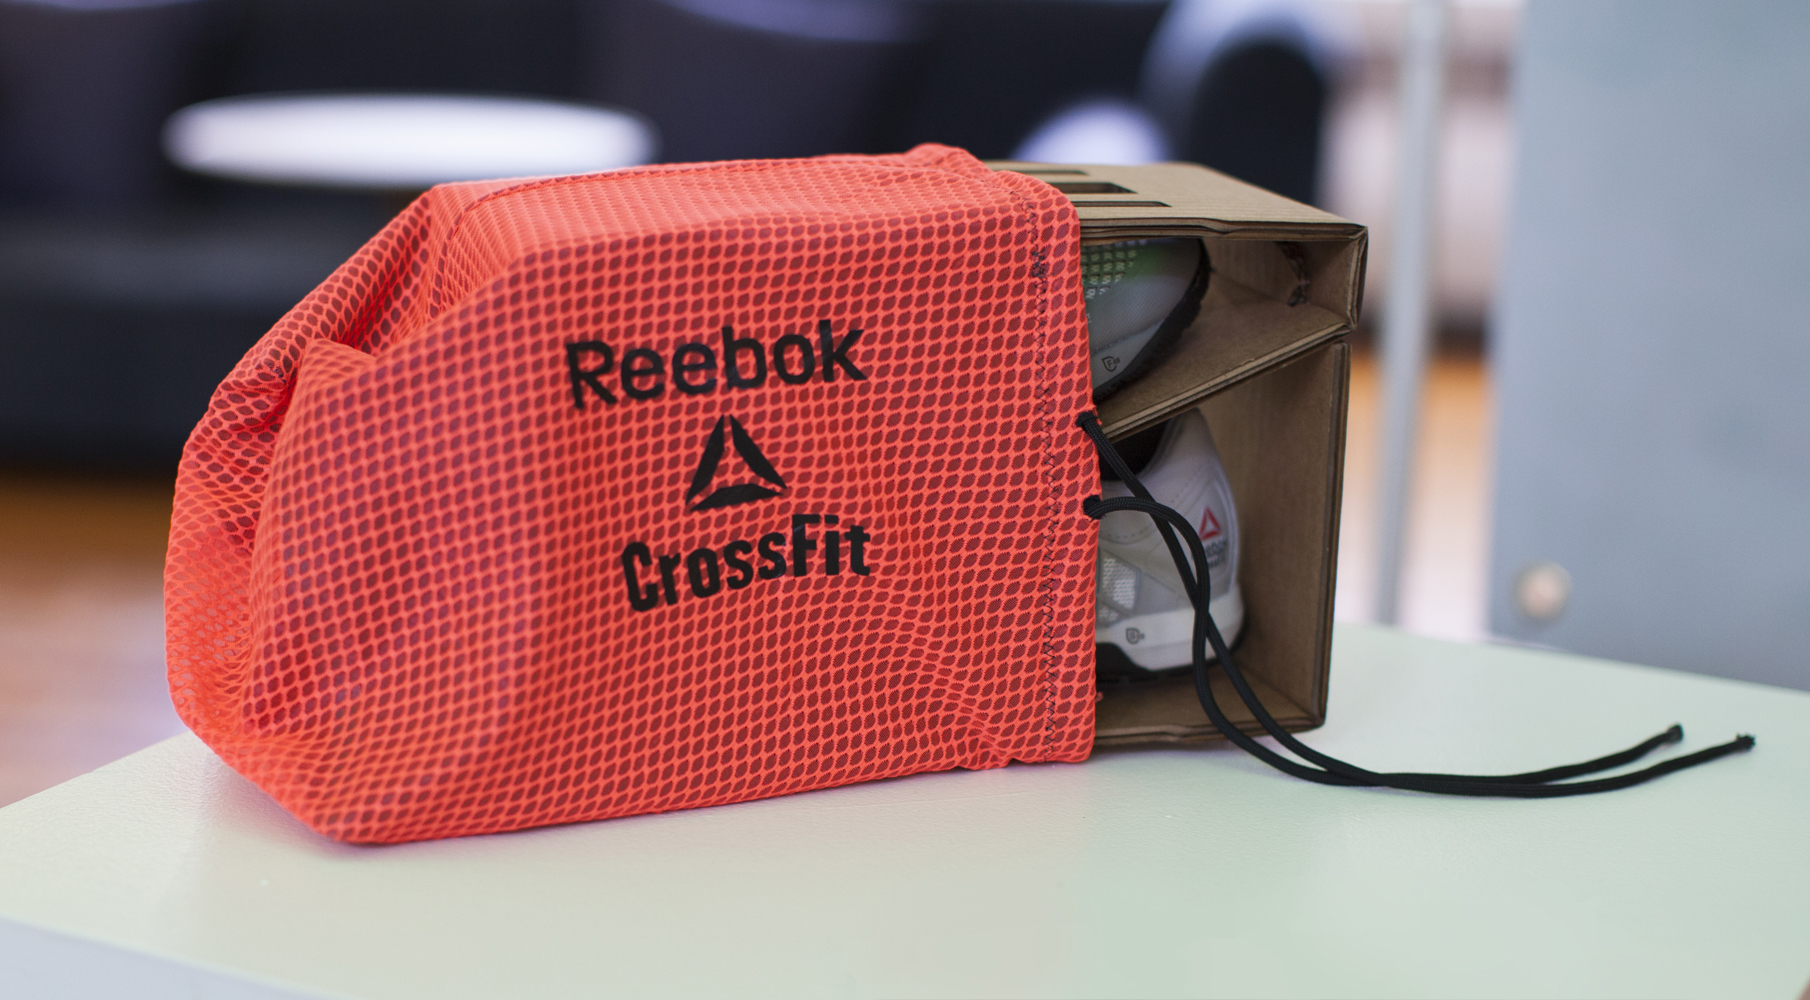 The Rebox concept reduces cardboard use in shoe packaging by 70% while upcycling offcut textile waste.